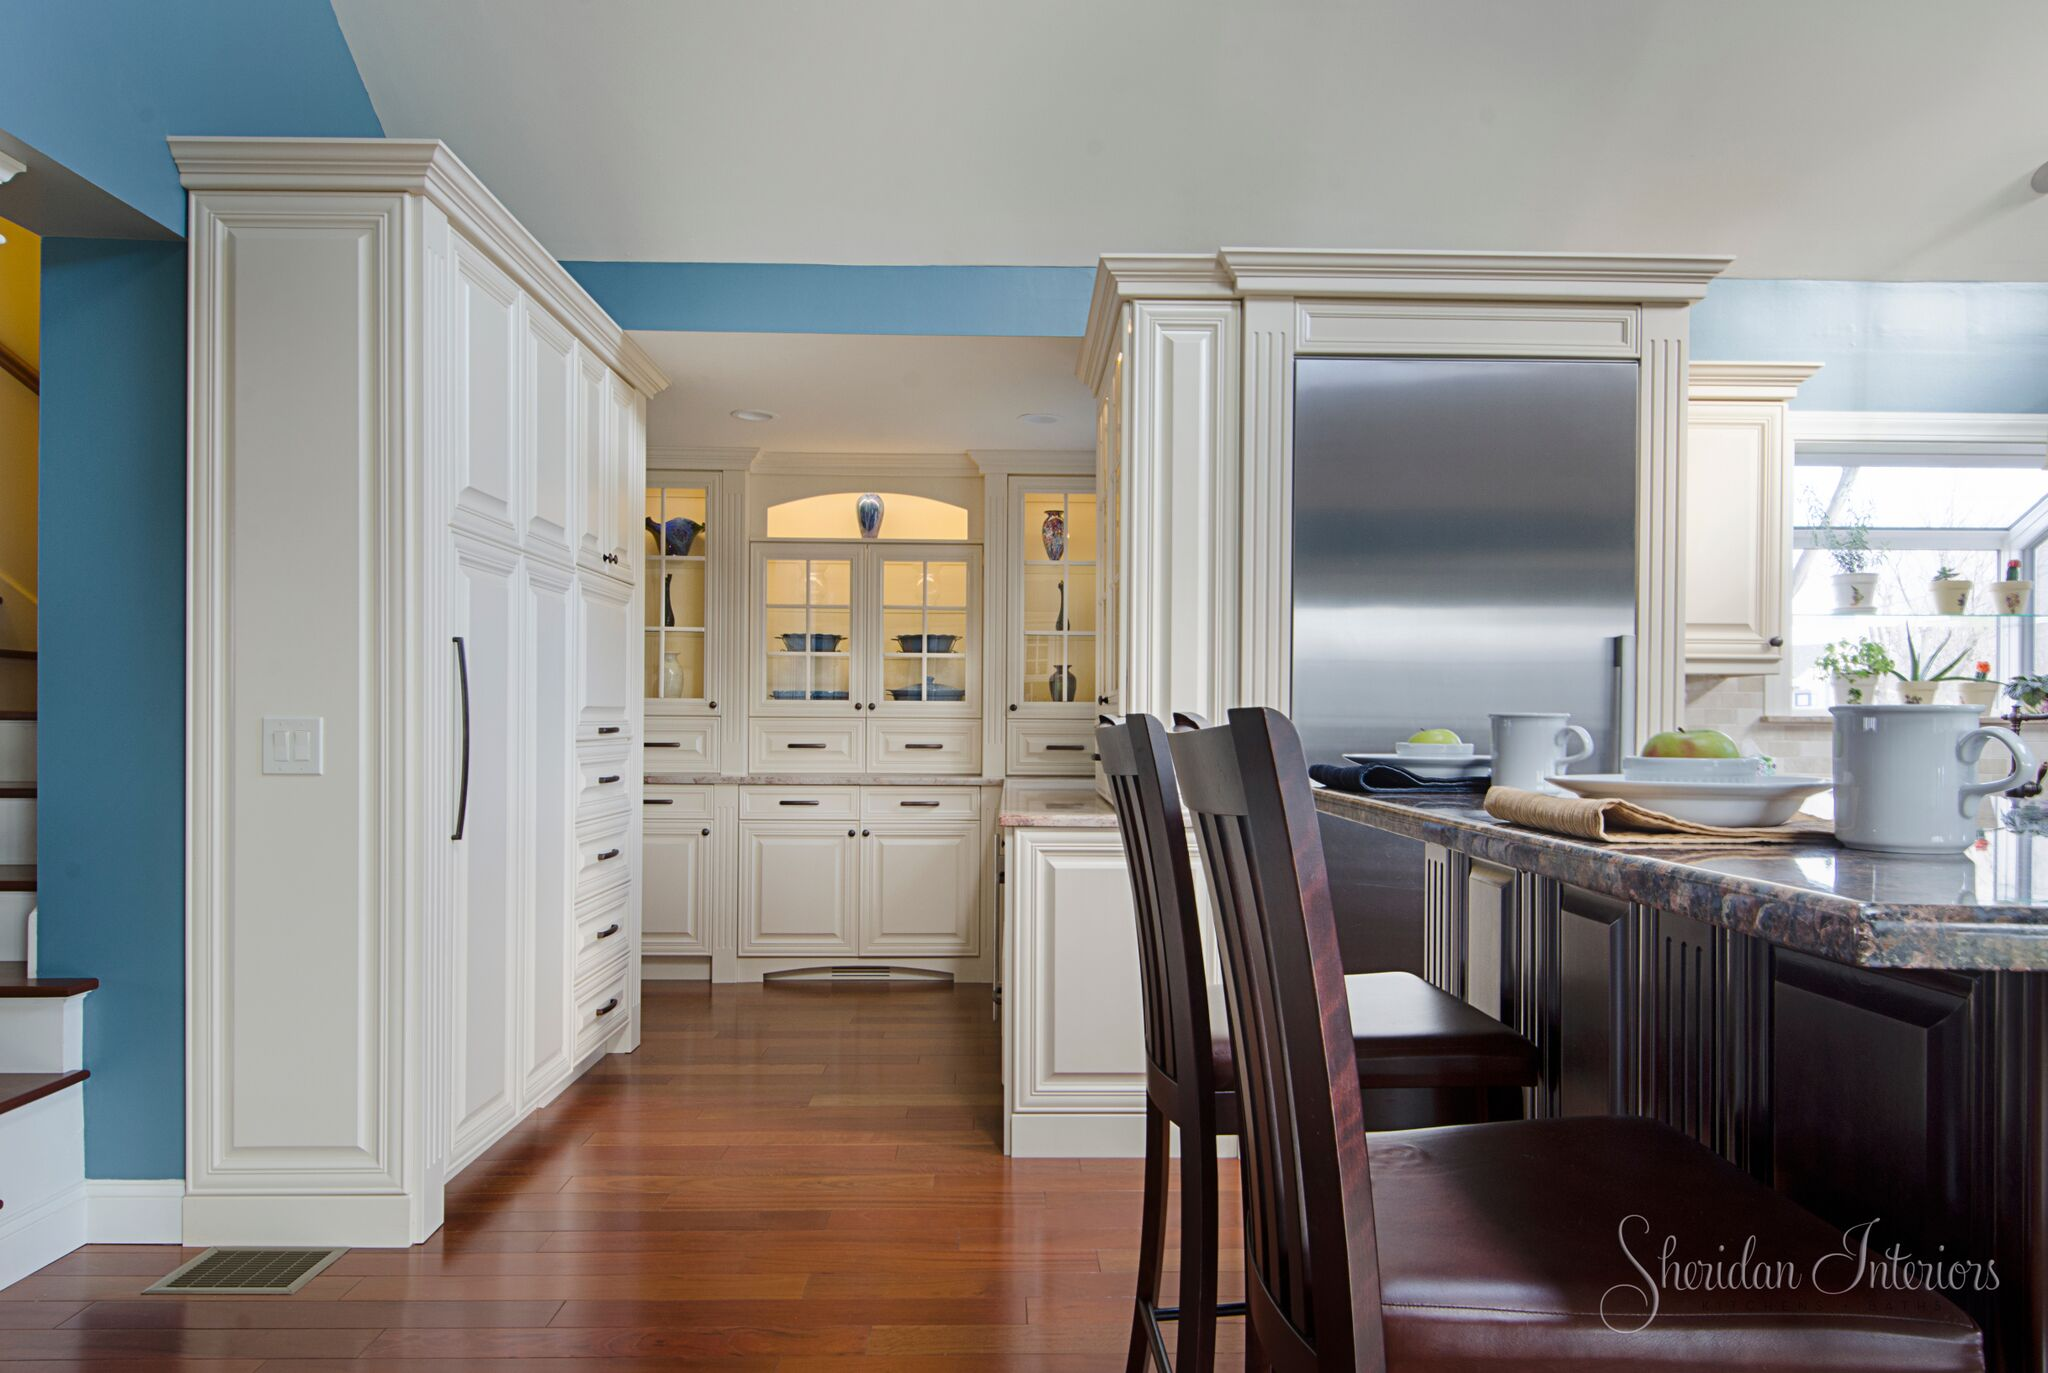 traditional kitchen, white cabinets with cherry coloured island, wood floors in kitchen, Traditional White Kitchen with Butler's Pantry - Sheridan Interiors, sheridan interiors kitchens and baths, kitchen designer cornwall, kitchen designer ottawa